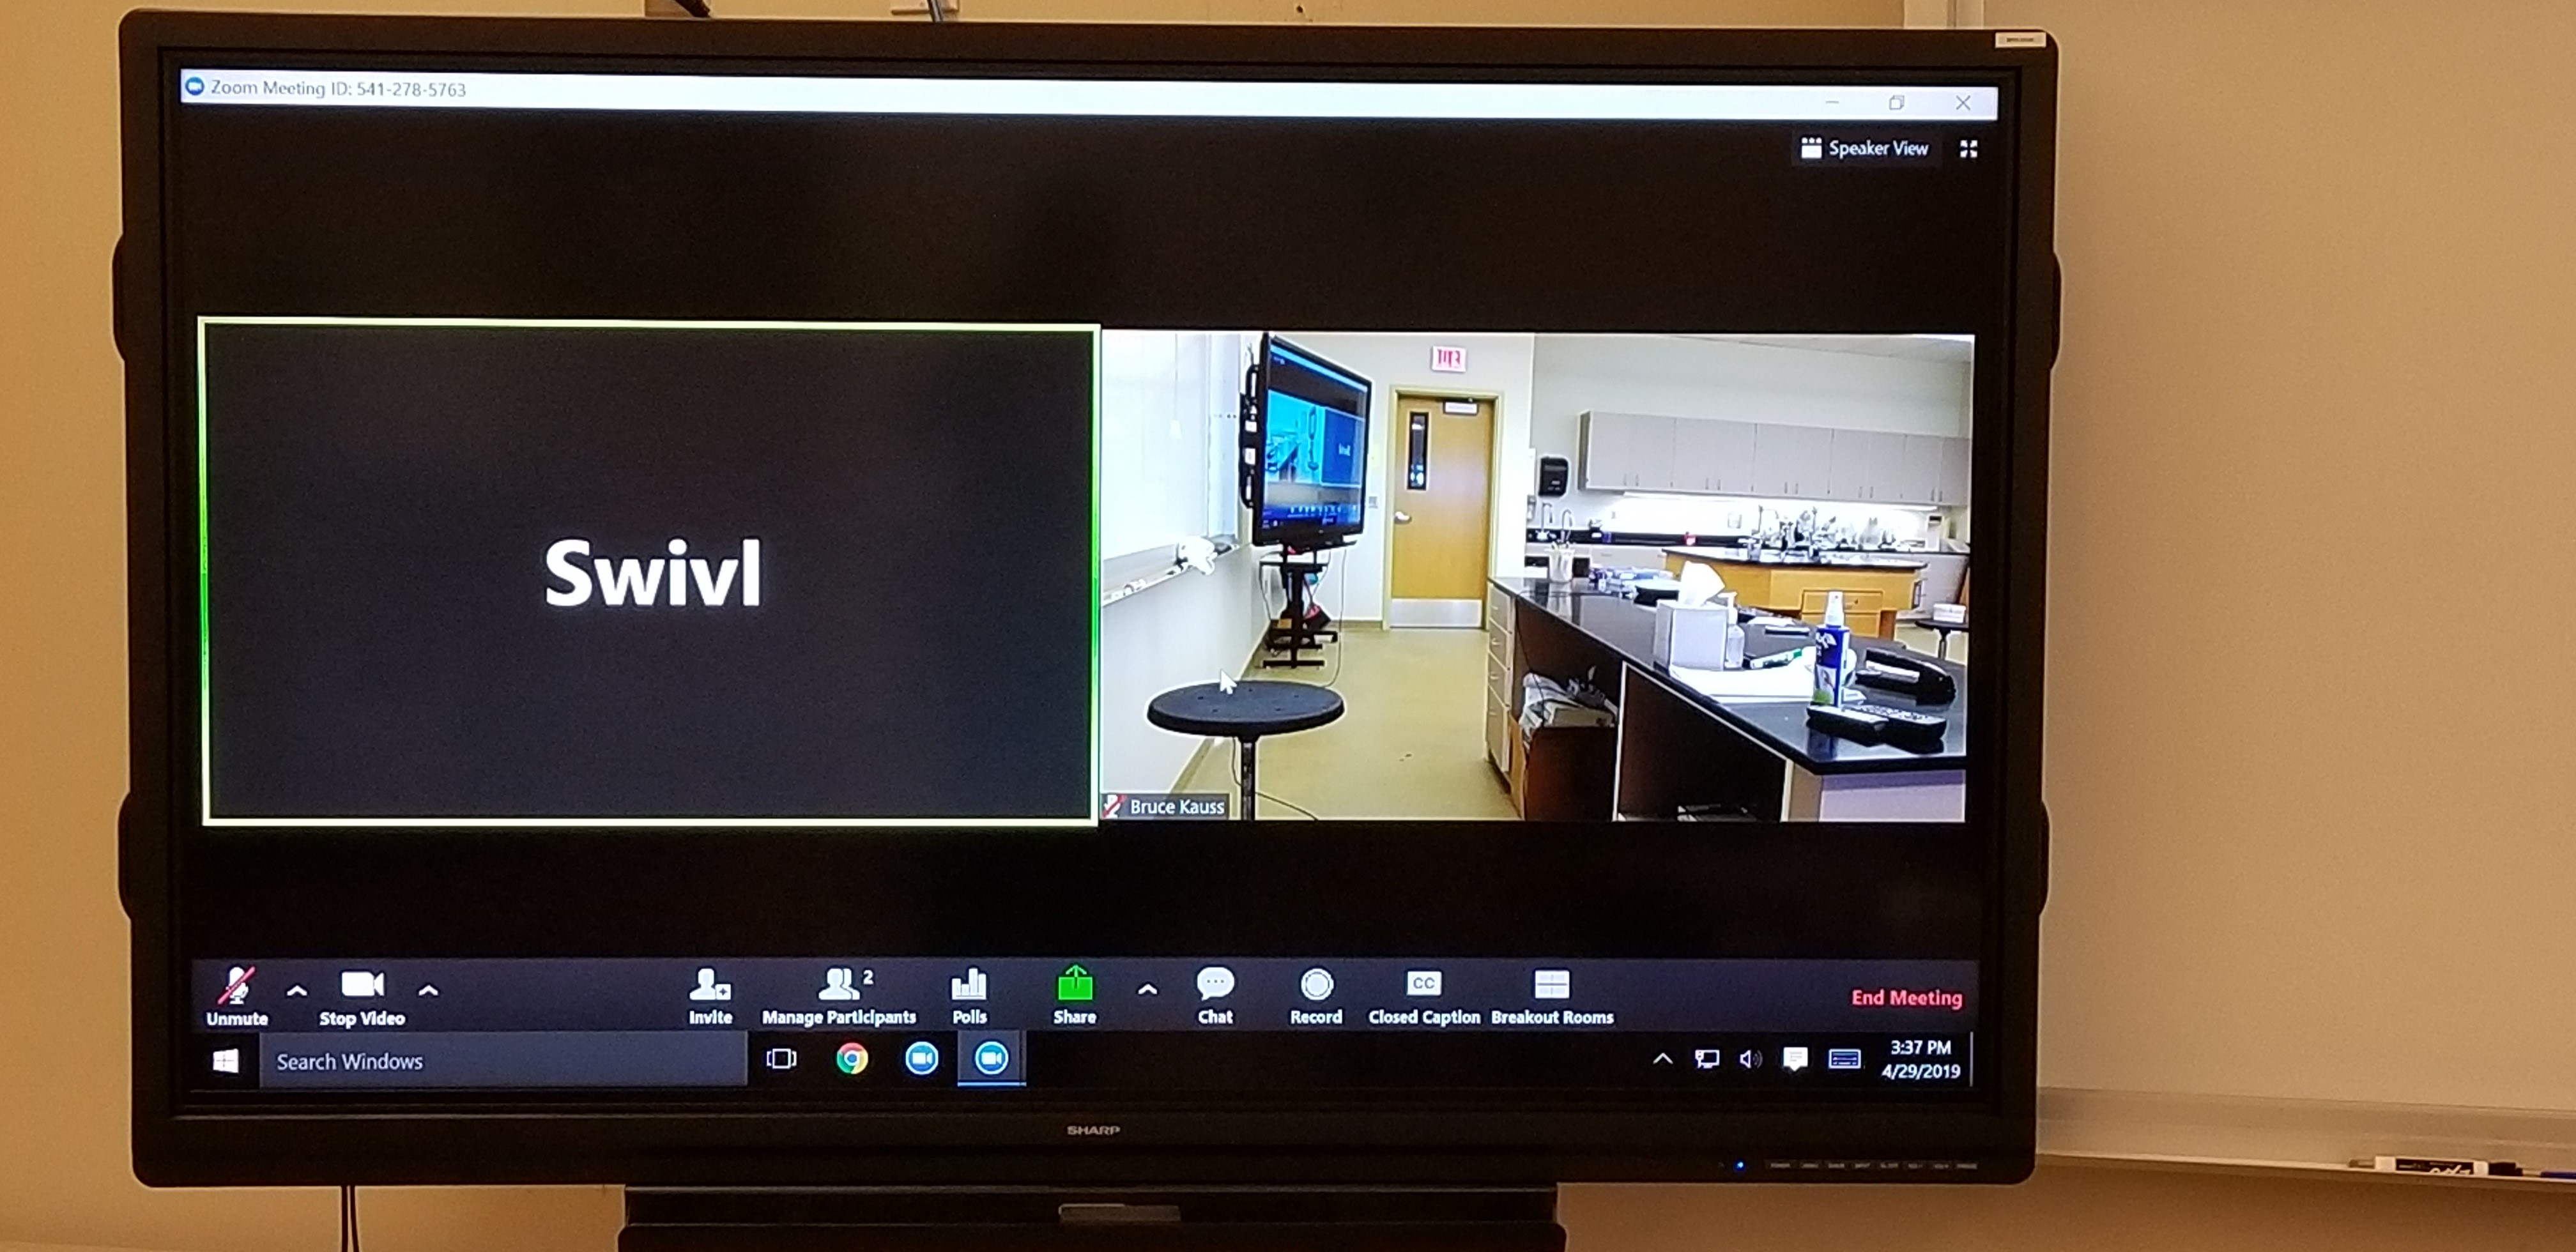 Classroom monitor with Swivl camera and Zoom Meeting displayed.